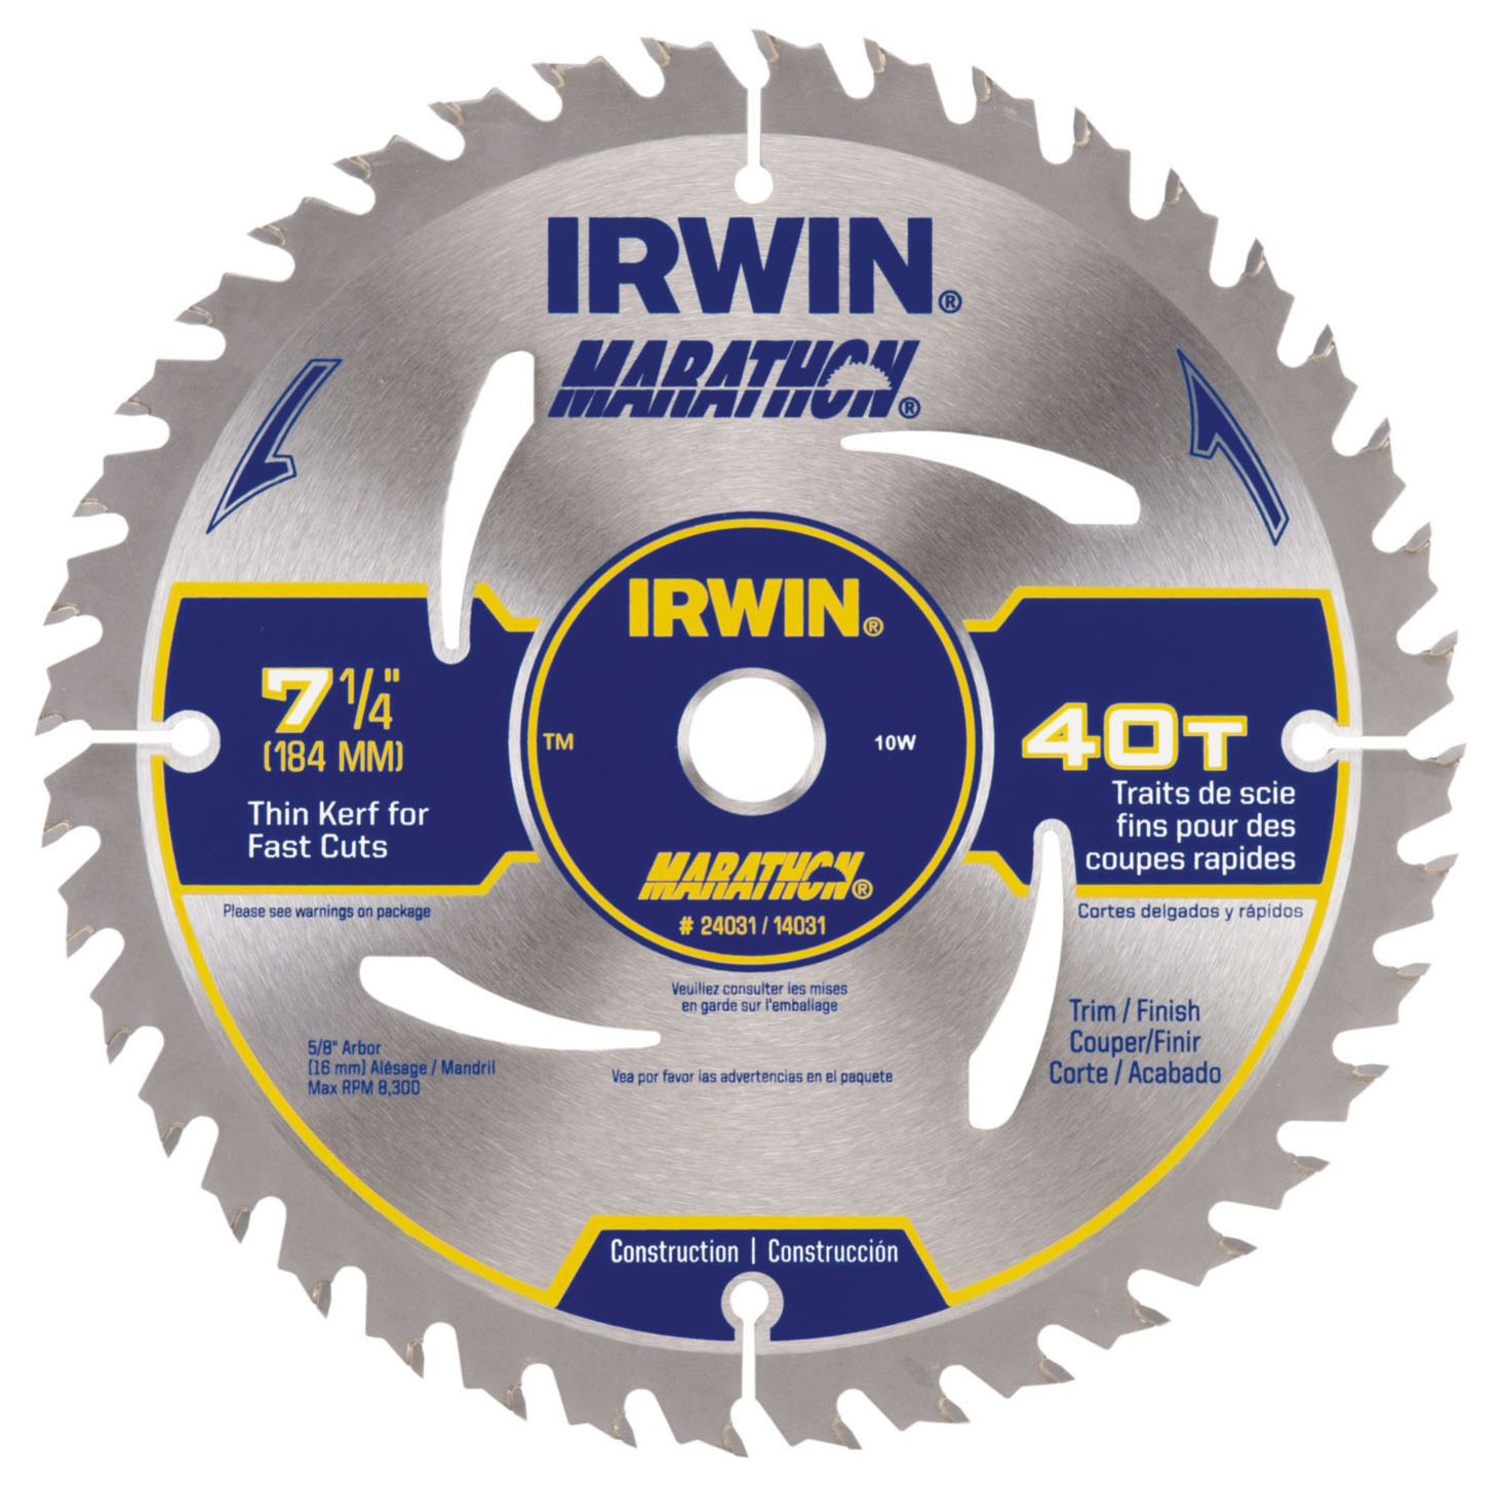 Irwin  Marathon  7-1/4 in.  Dia. x 5/8 in.  Carbide  Marathon  Circular Saw Blade  40 teeth 1 pk